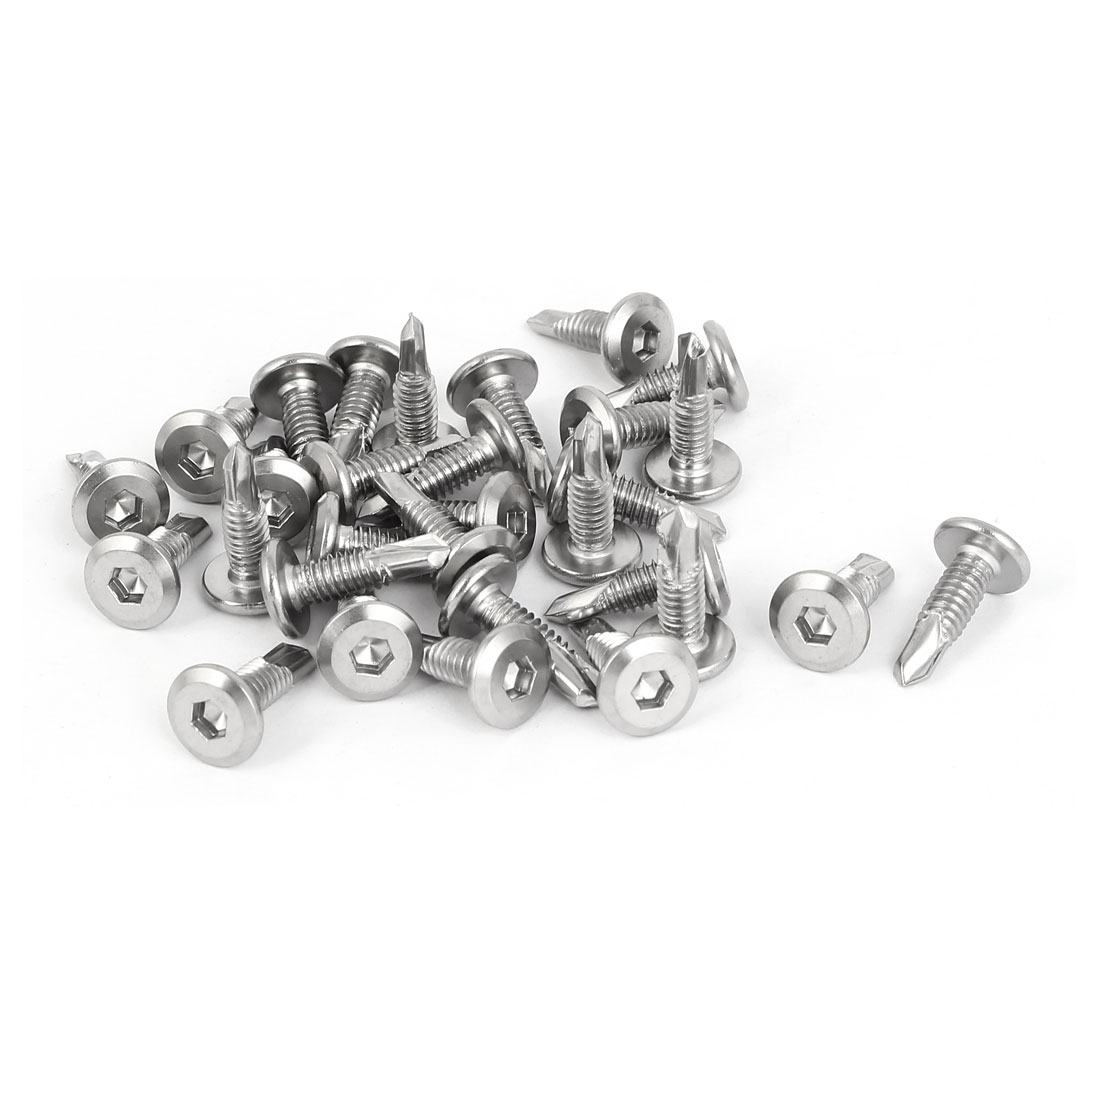 M5.5x19mm Male Thread Hex Socket Cap Flat Head Self Drilling Screws Bolts 30 Pcs